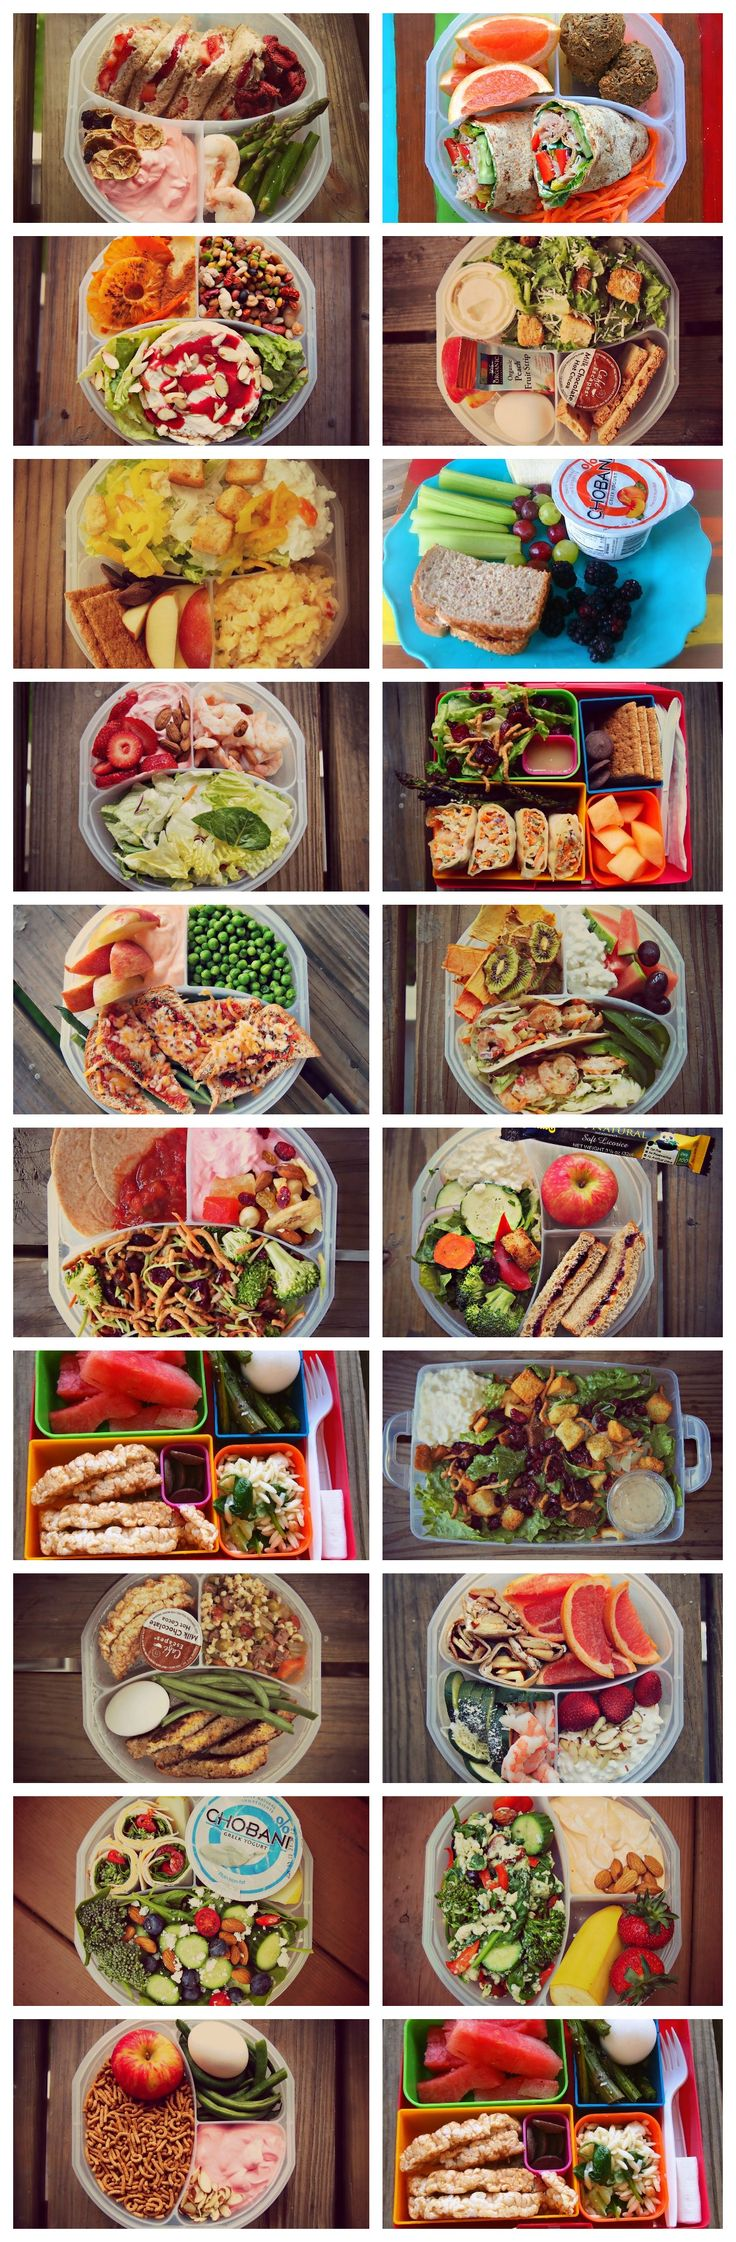 Healthy To Go Meal Ideas